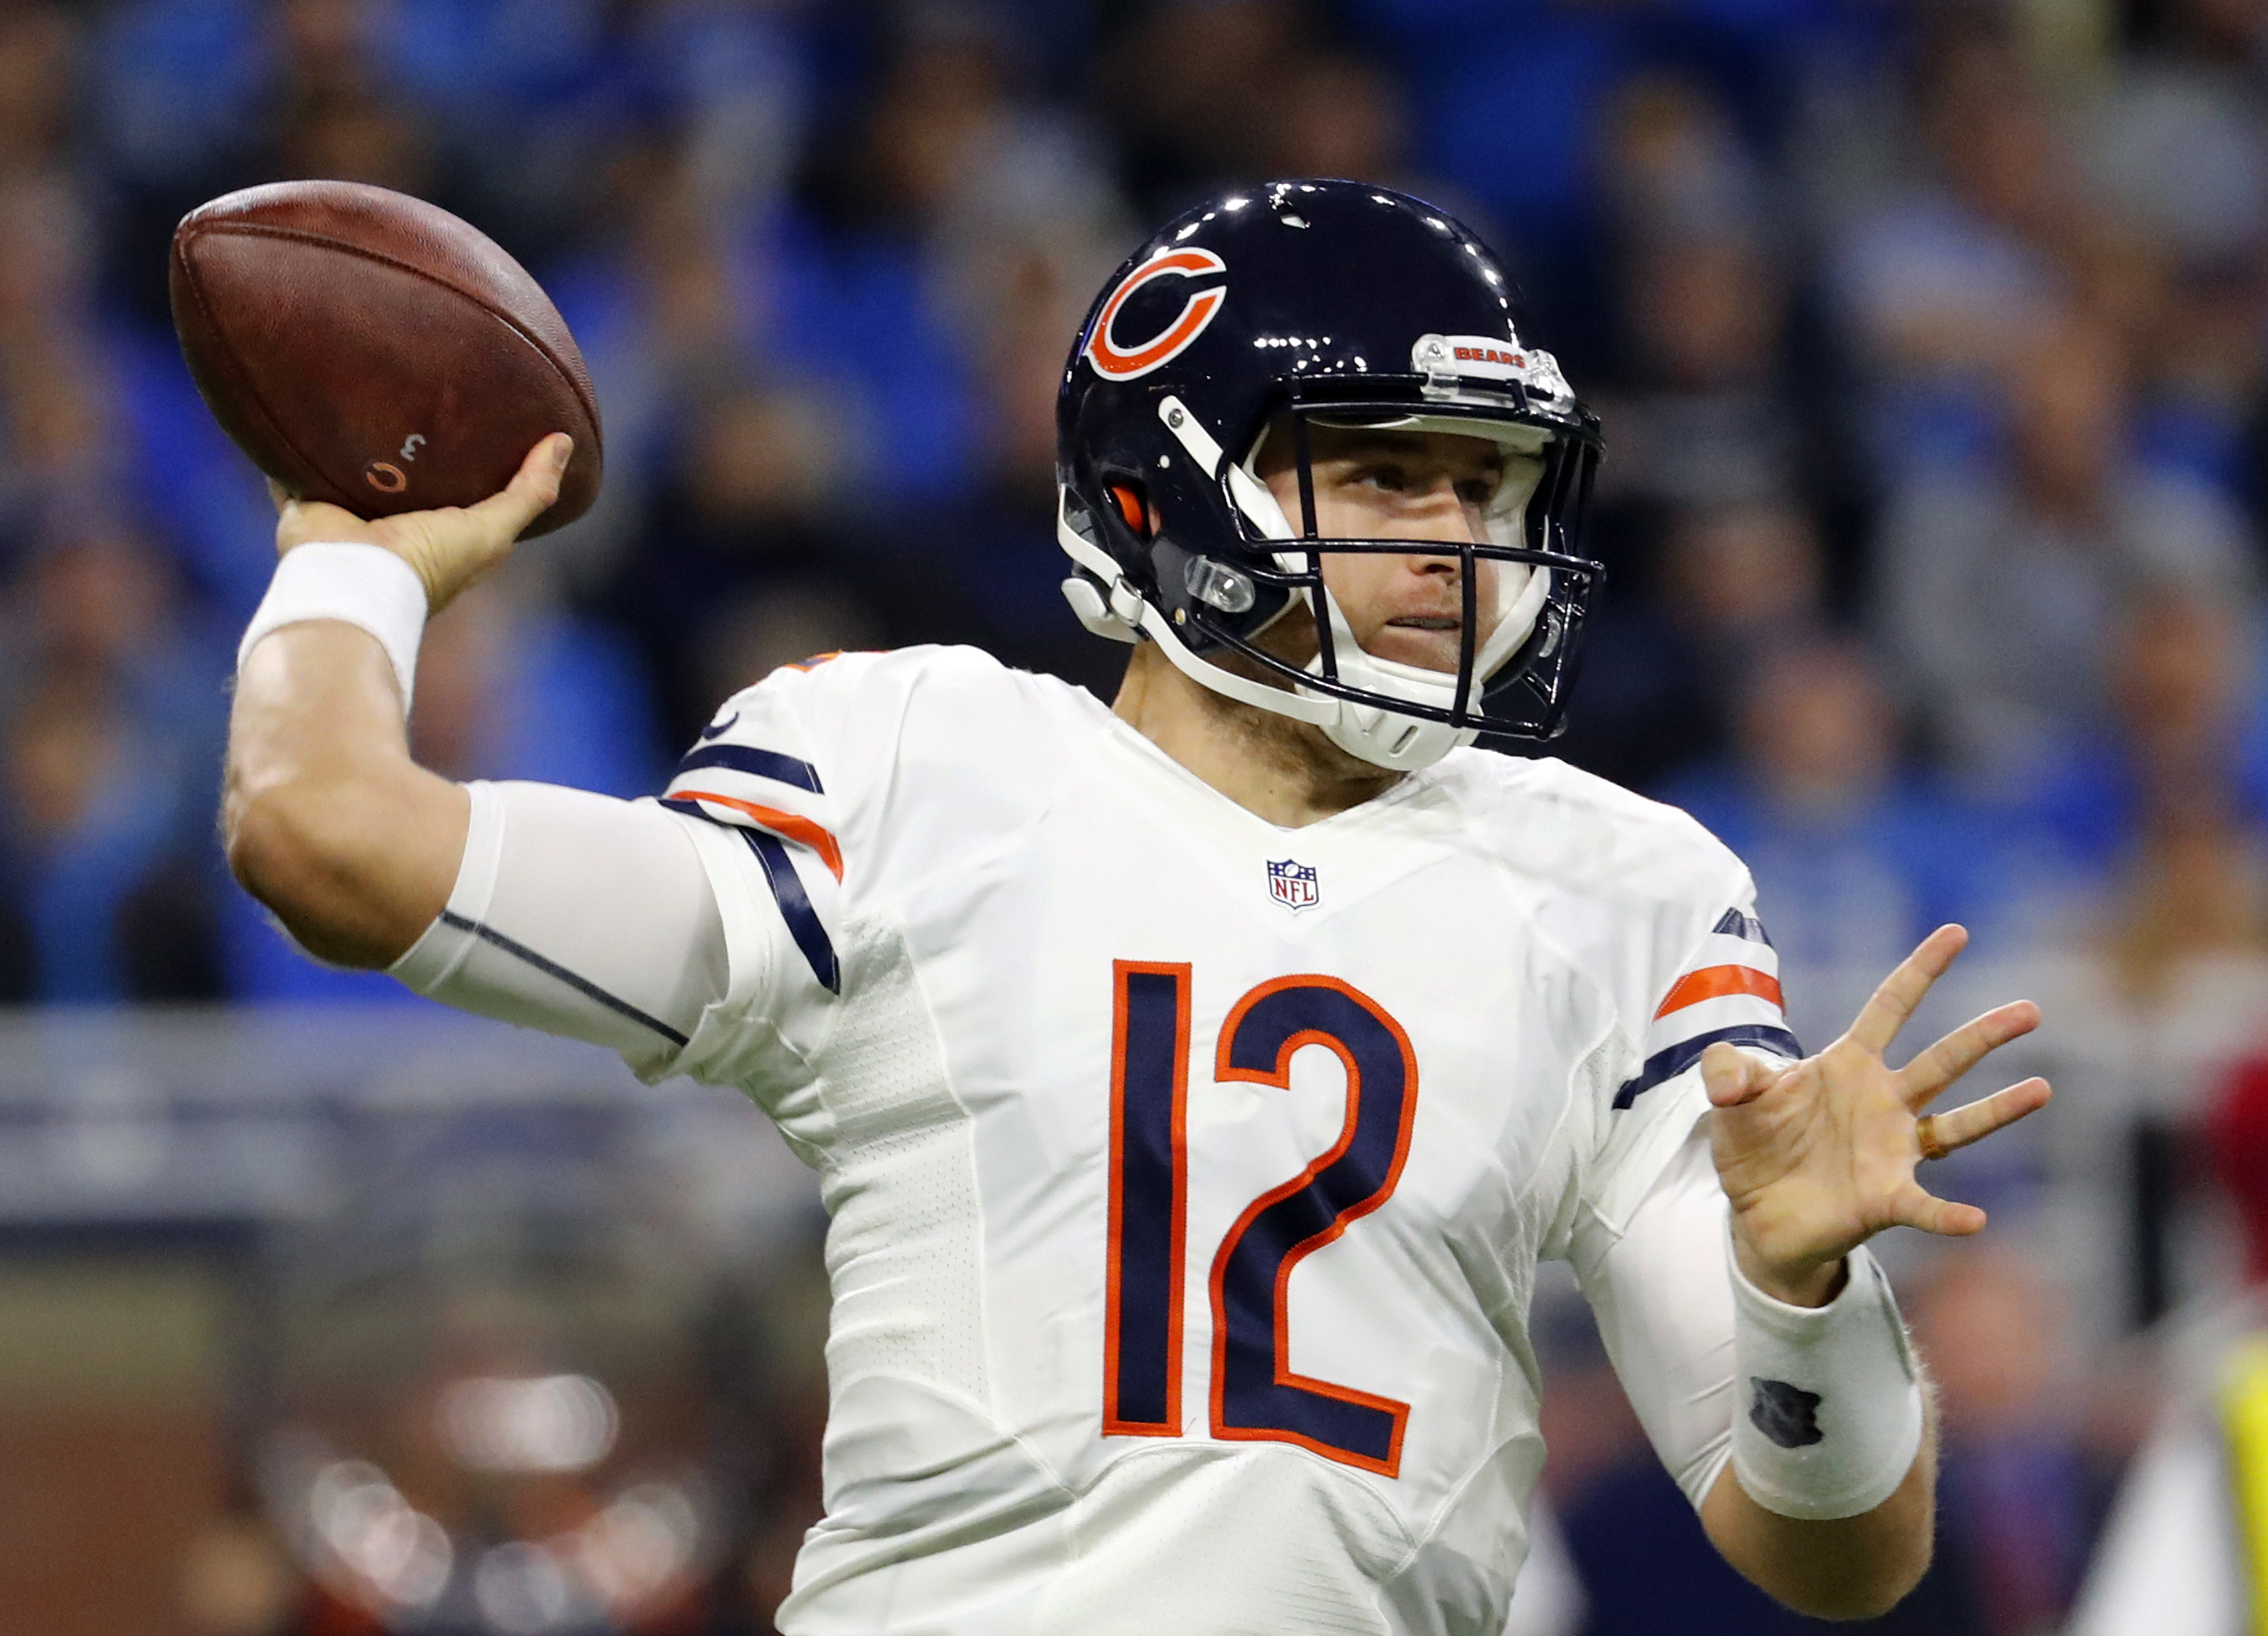 Chicago Bears quarterback Matt Barkley (12) throws against the Detroit Lions in the first half of an NFL football game in Detroit, Sunday, Dec. 11, 2016. (AP Photo/Rick Osentoski)